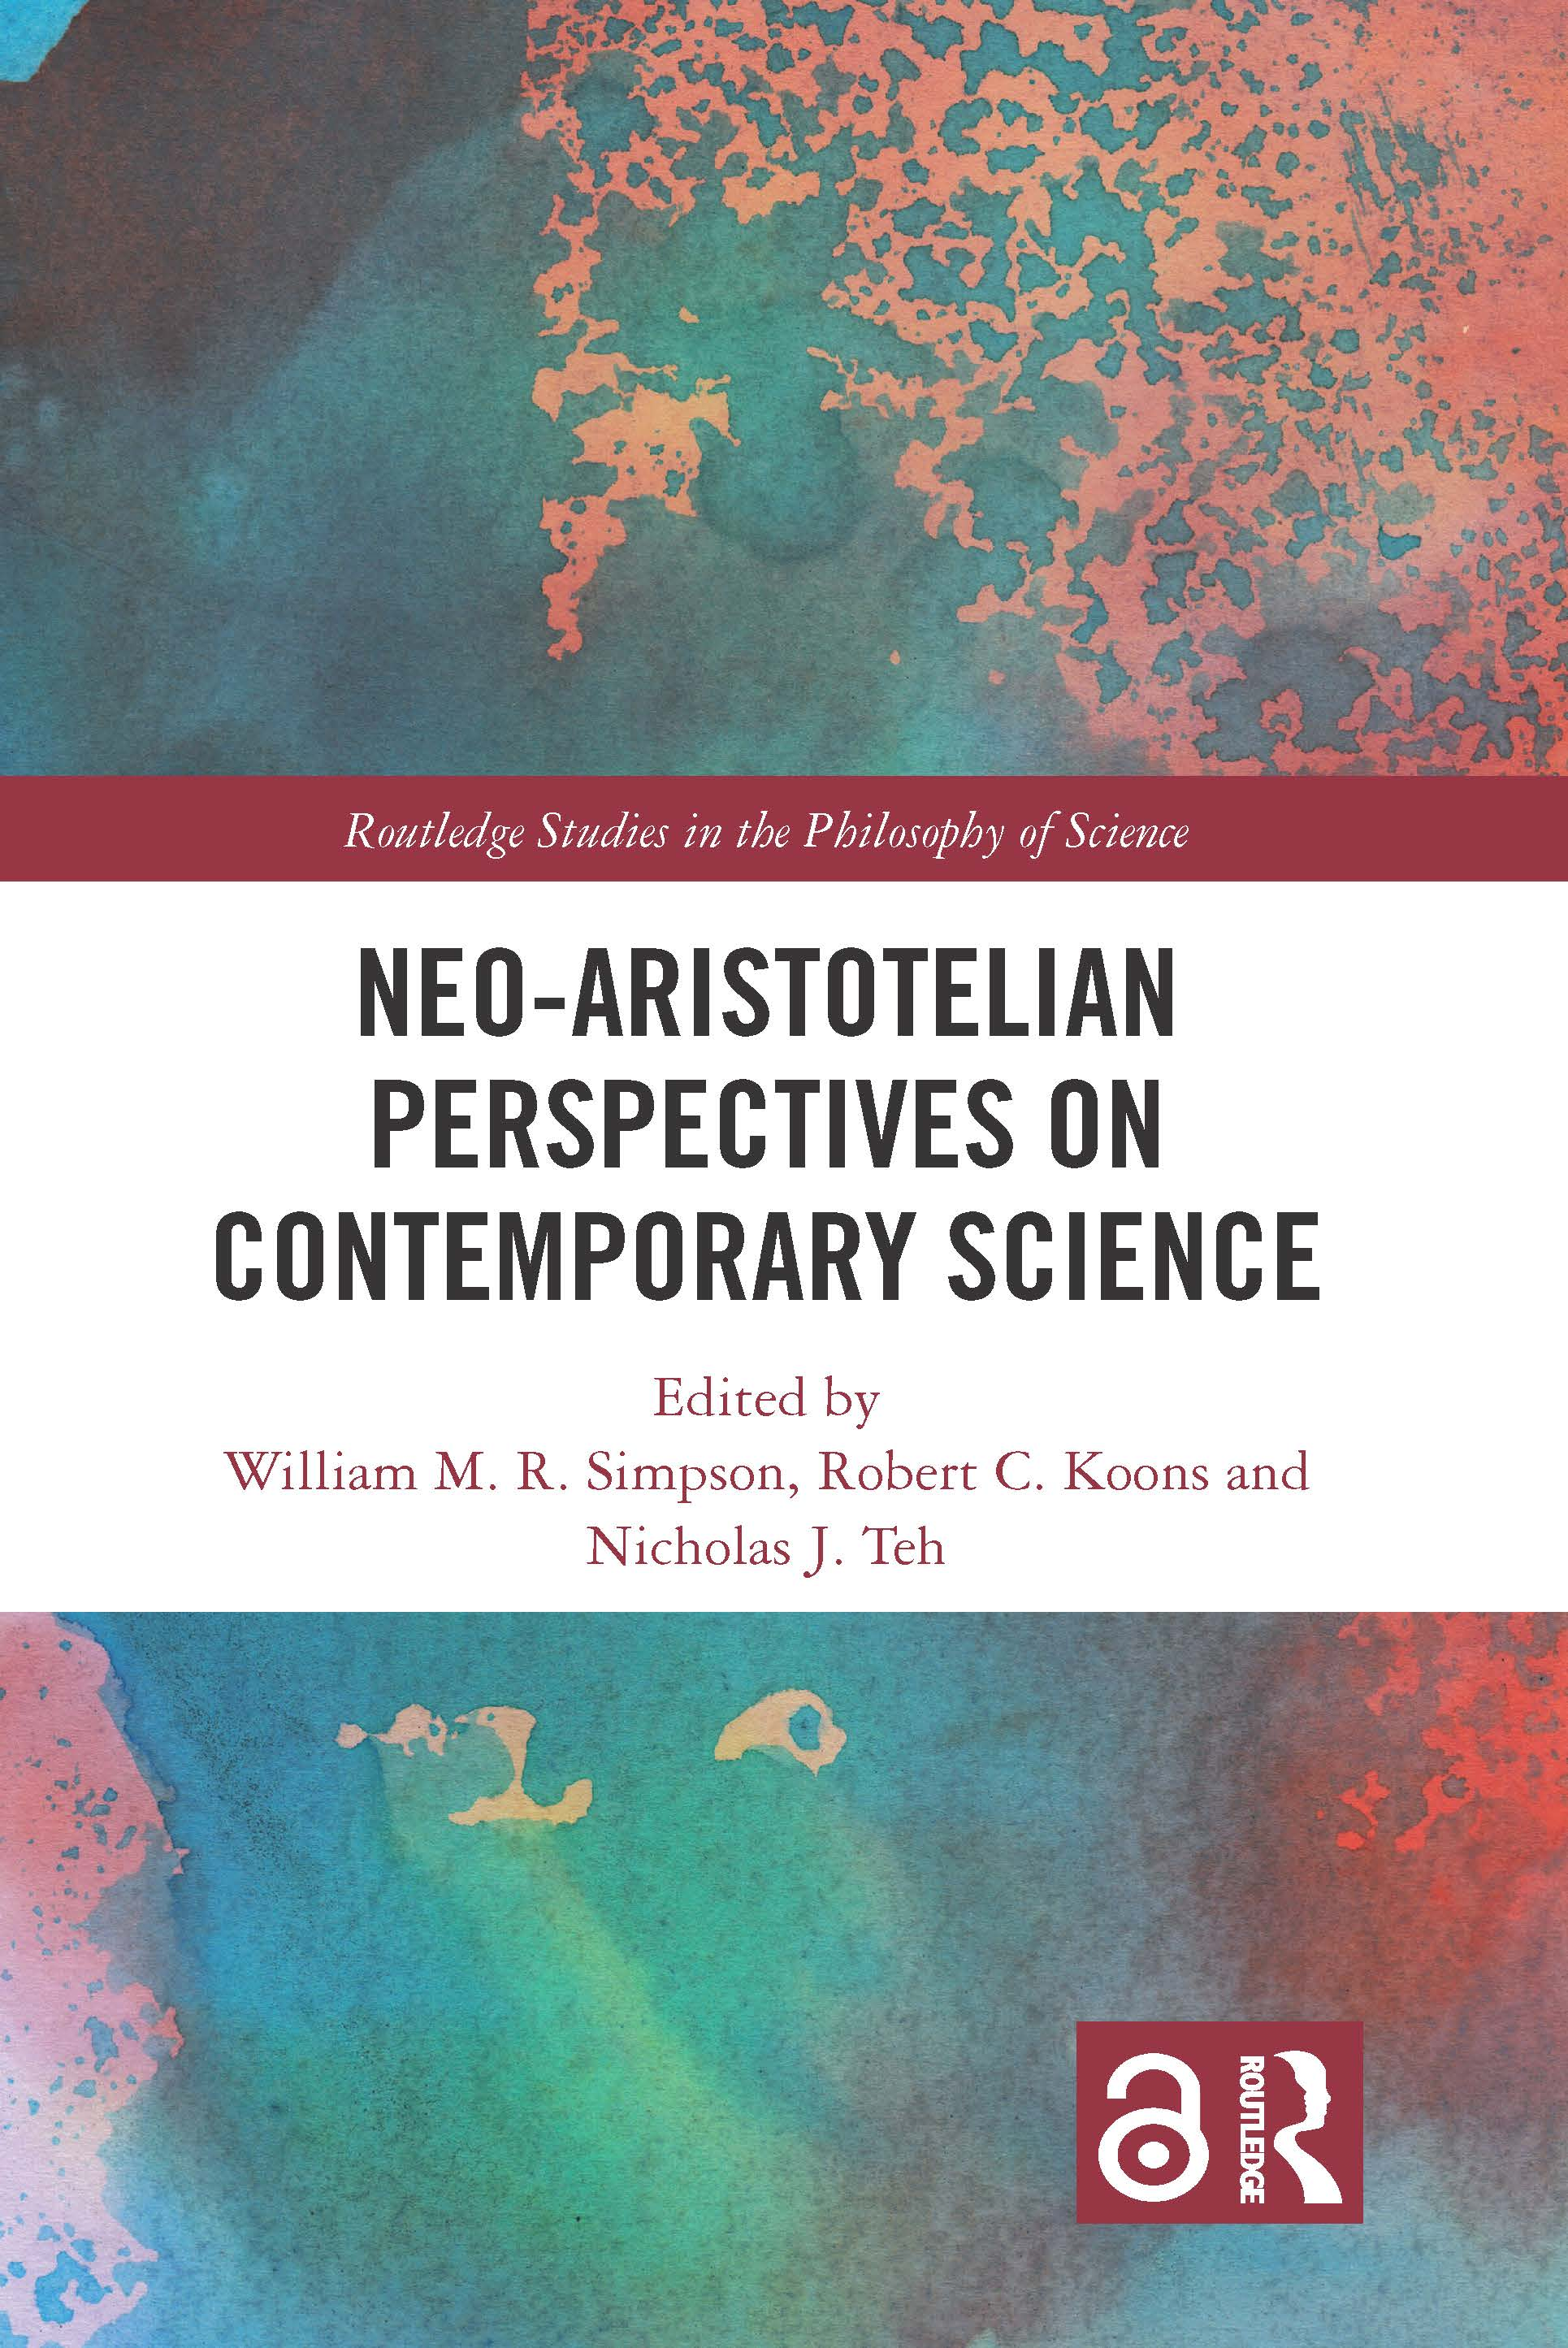 Neo-Aristotelian Perspectives on Contemporary Science book cover